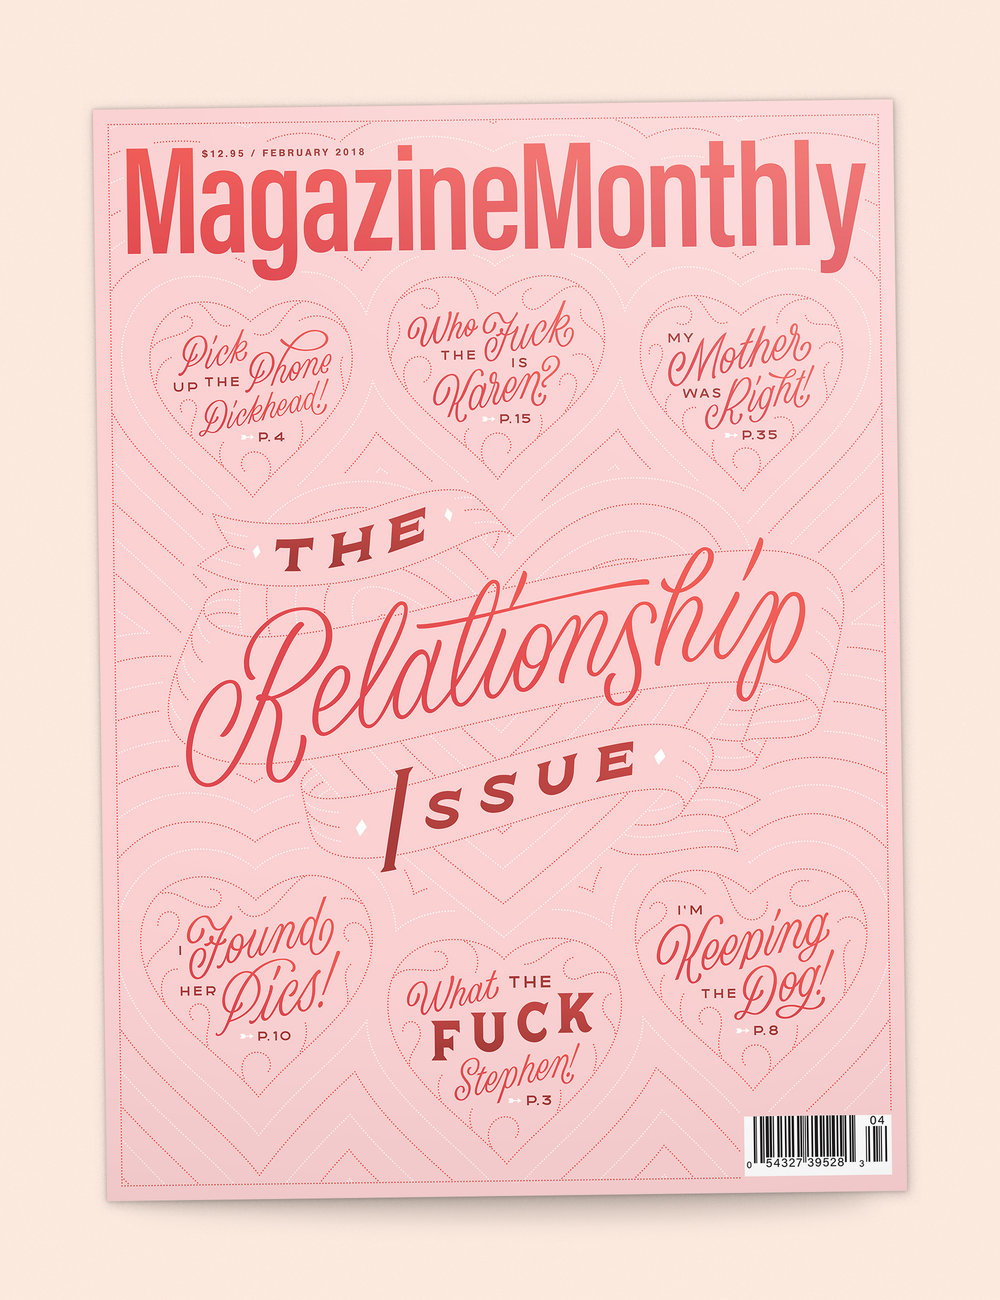 Issue #2:  The Relationship Issue